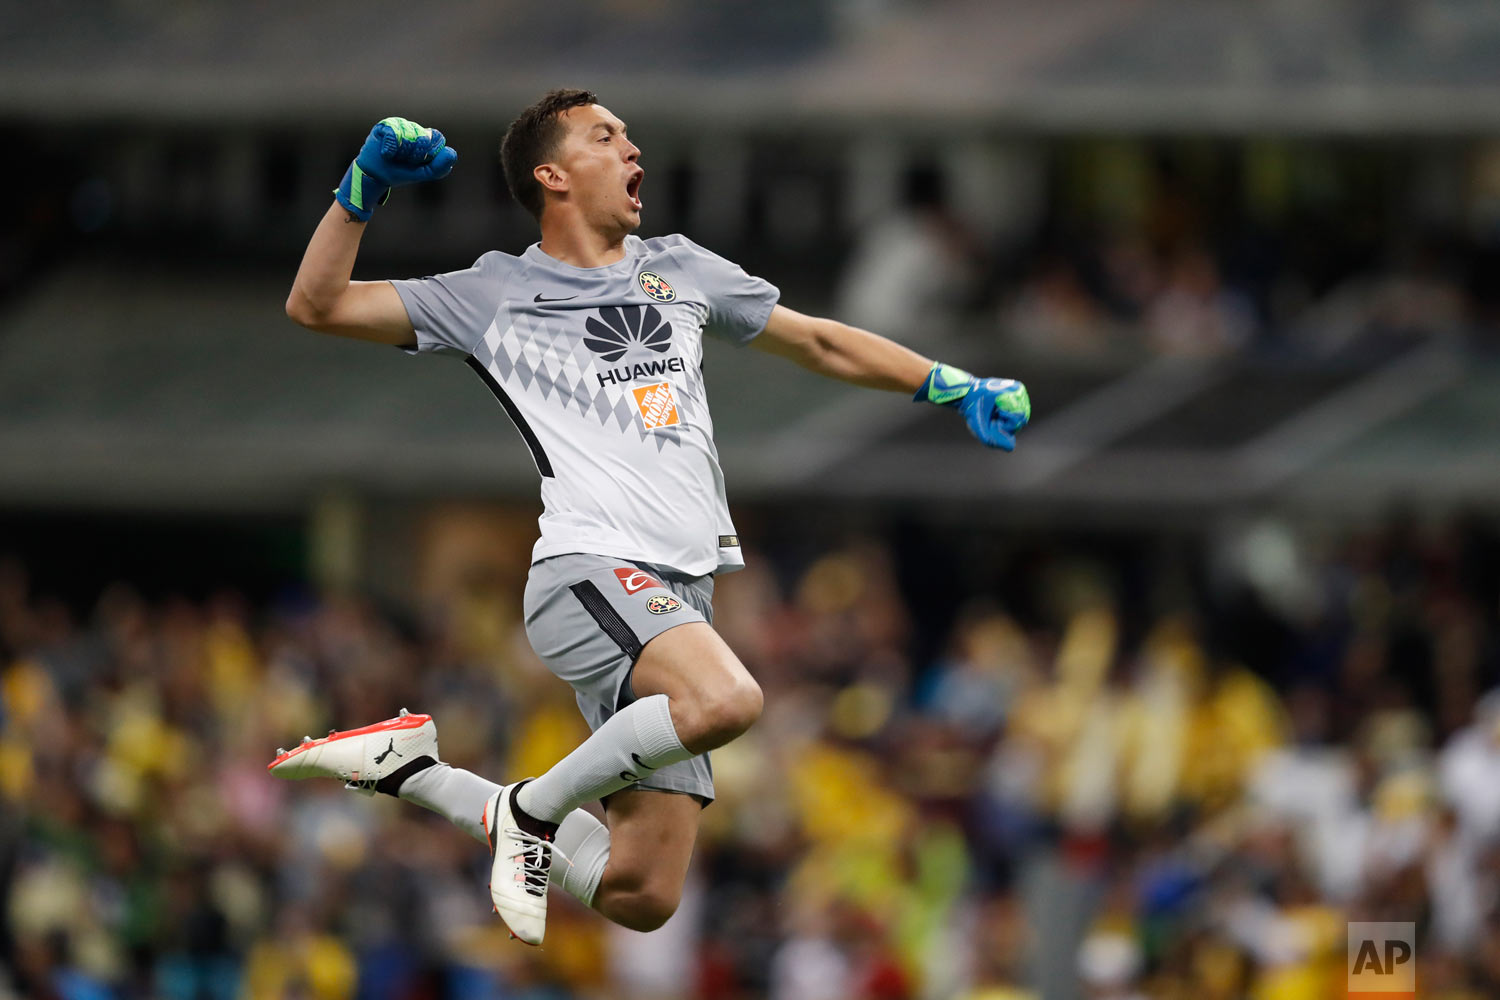 In this March 31, 2018 photo, America's goalkeeper Agustin Marchesin celebrates his team's second goal by teammate Cecilio Dominguez during a Mexico soccer league match against Cruz Azul in Mexico City. (AP Photo/Eduardo Verdugo)